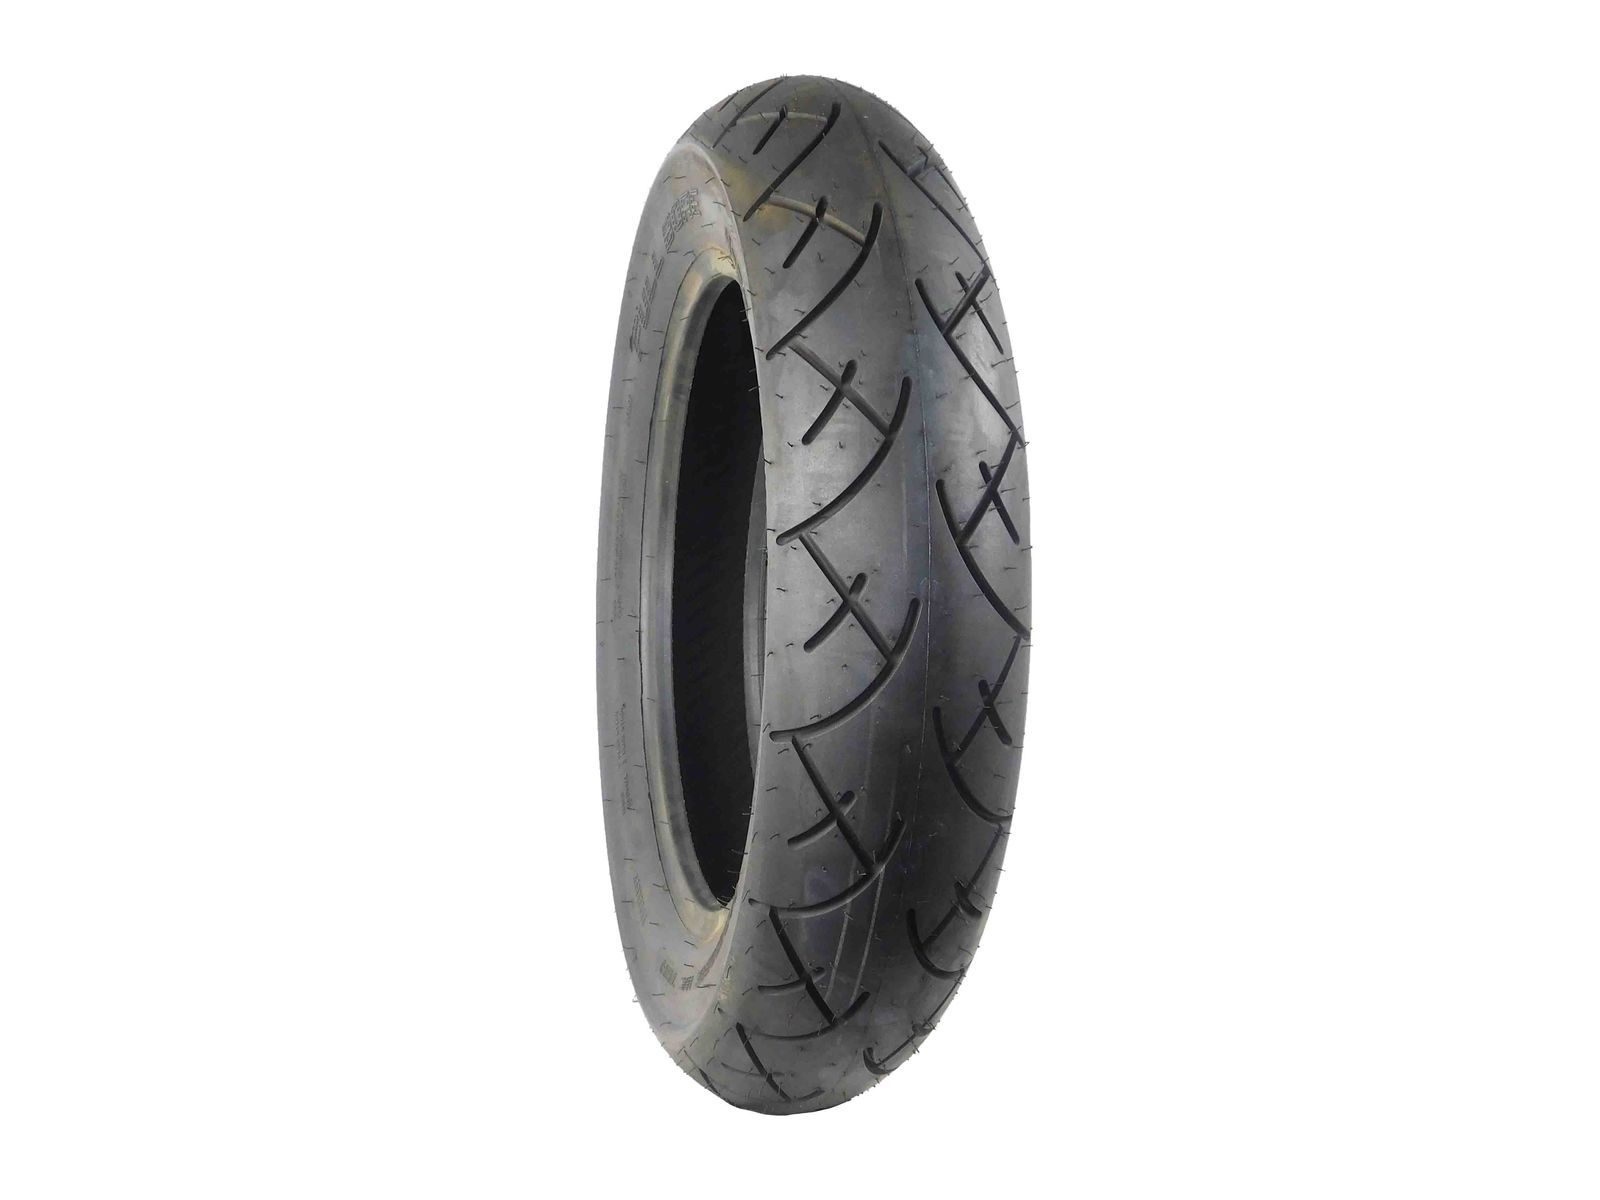 Full-Bore-100-90-19-Front-140-90-15-Rear-Set-Cruiser-Motorcycle-Tires-image-4